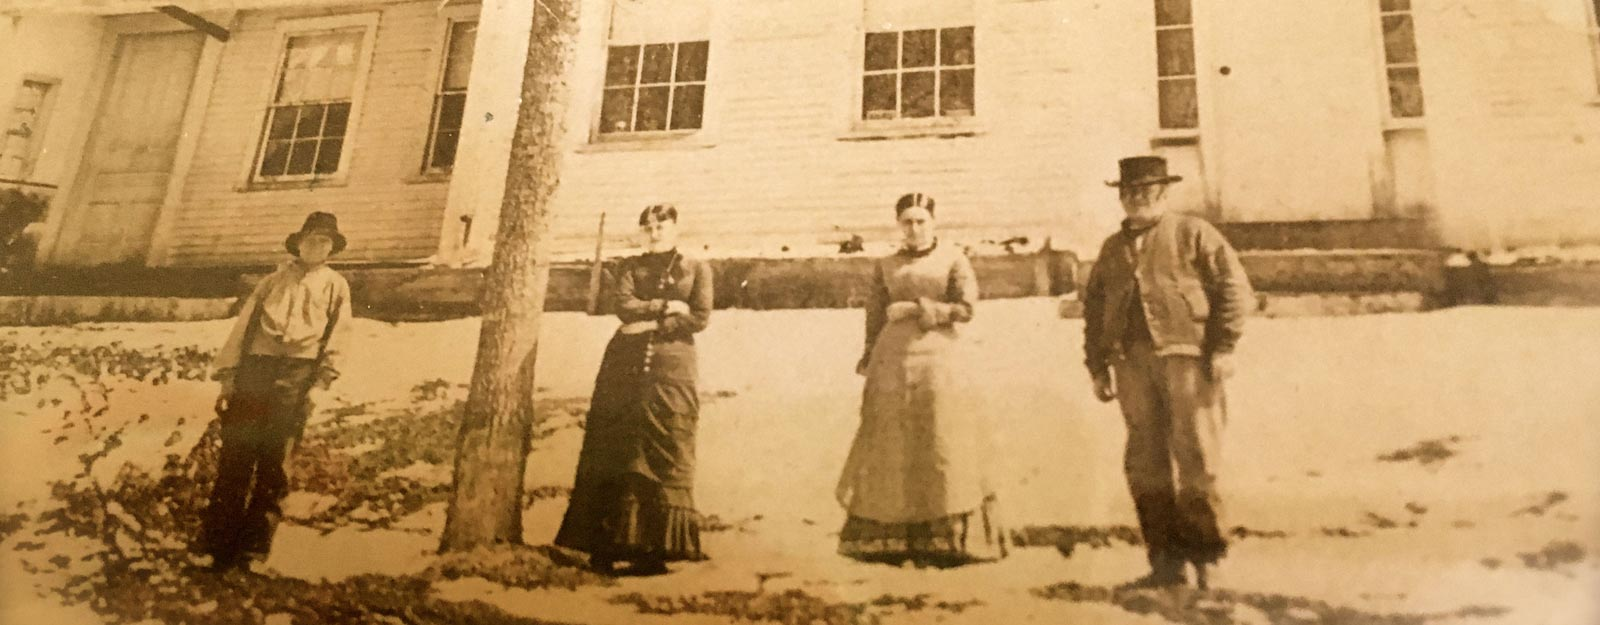 The Simpson Family in front of the farmhouse1860's - which later became the Lodge